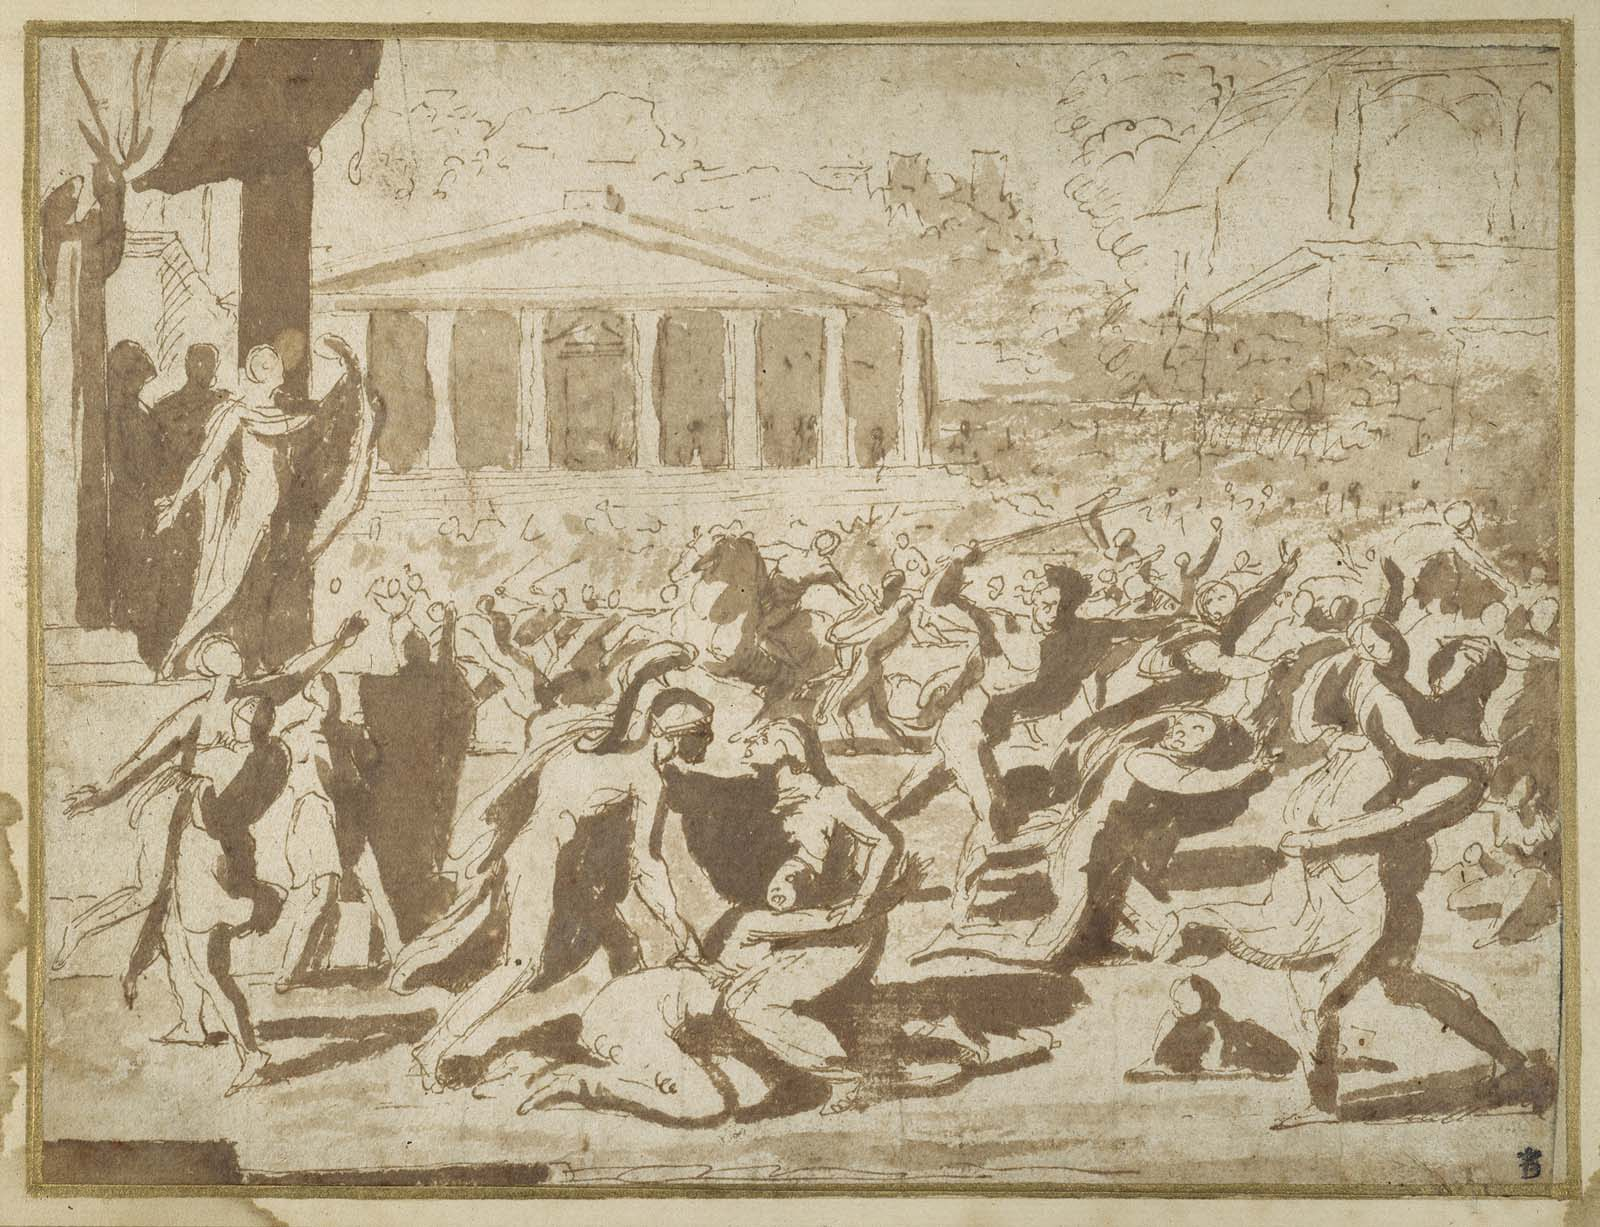 sketch of women being attacked by armed men in classical setting with